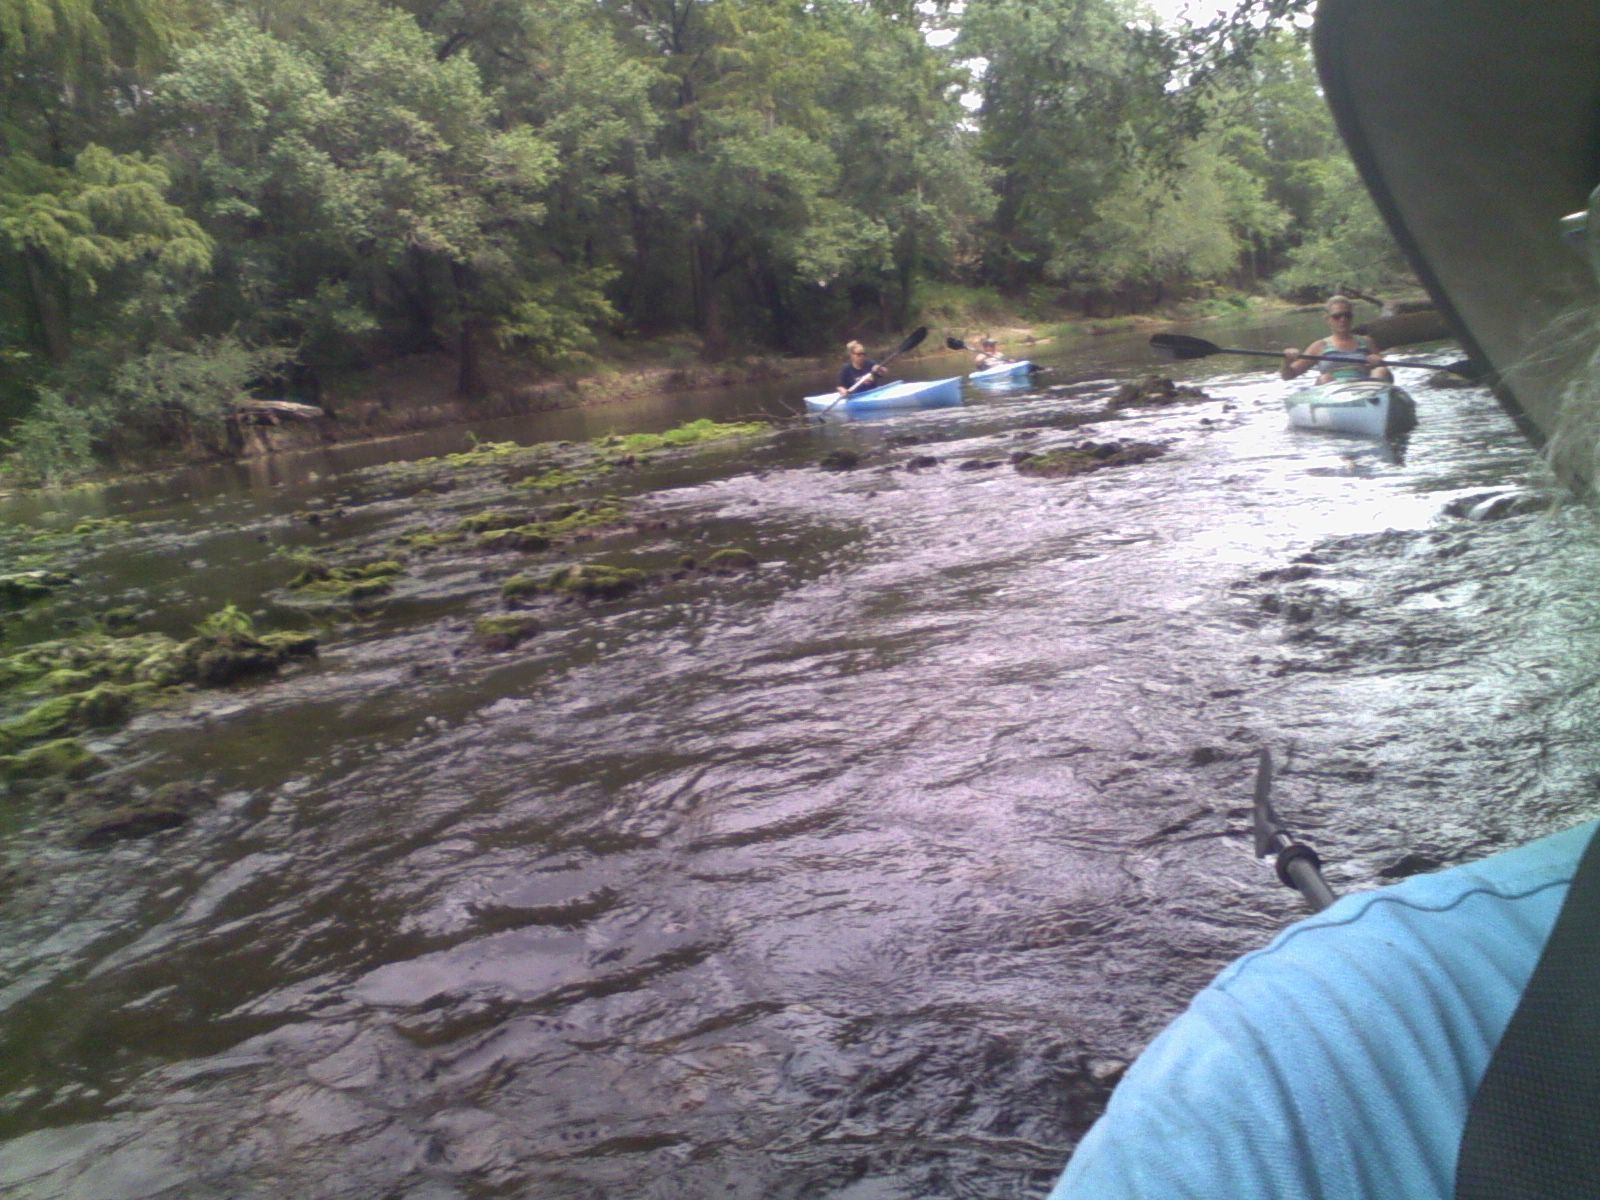 1600x1200 Down the rapids is easier than up 30.7954483, -83.4526749, in Sabal Trail @ Withlacoochee @ US 84, by John S. Quarterman, for WWALS.net, 28 August 2015